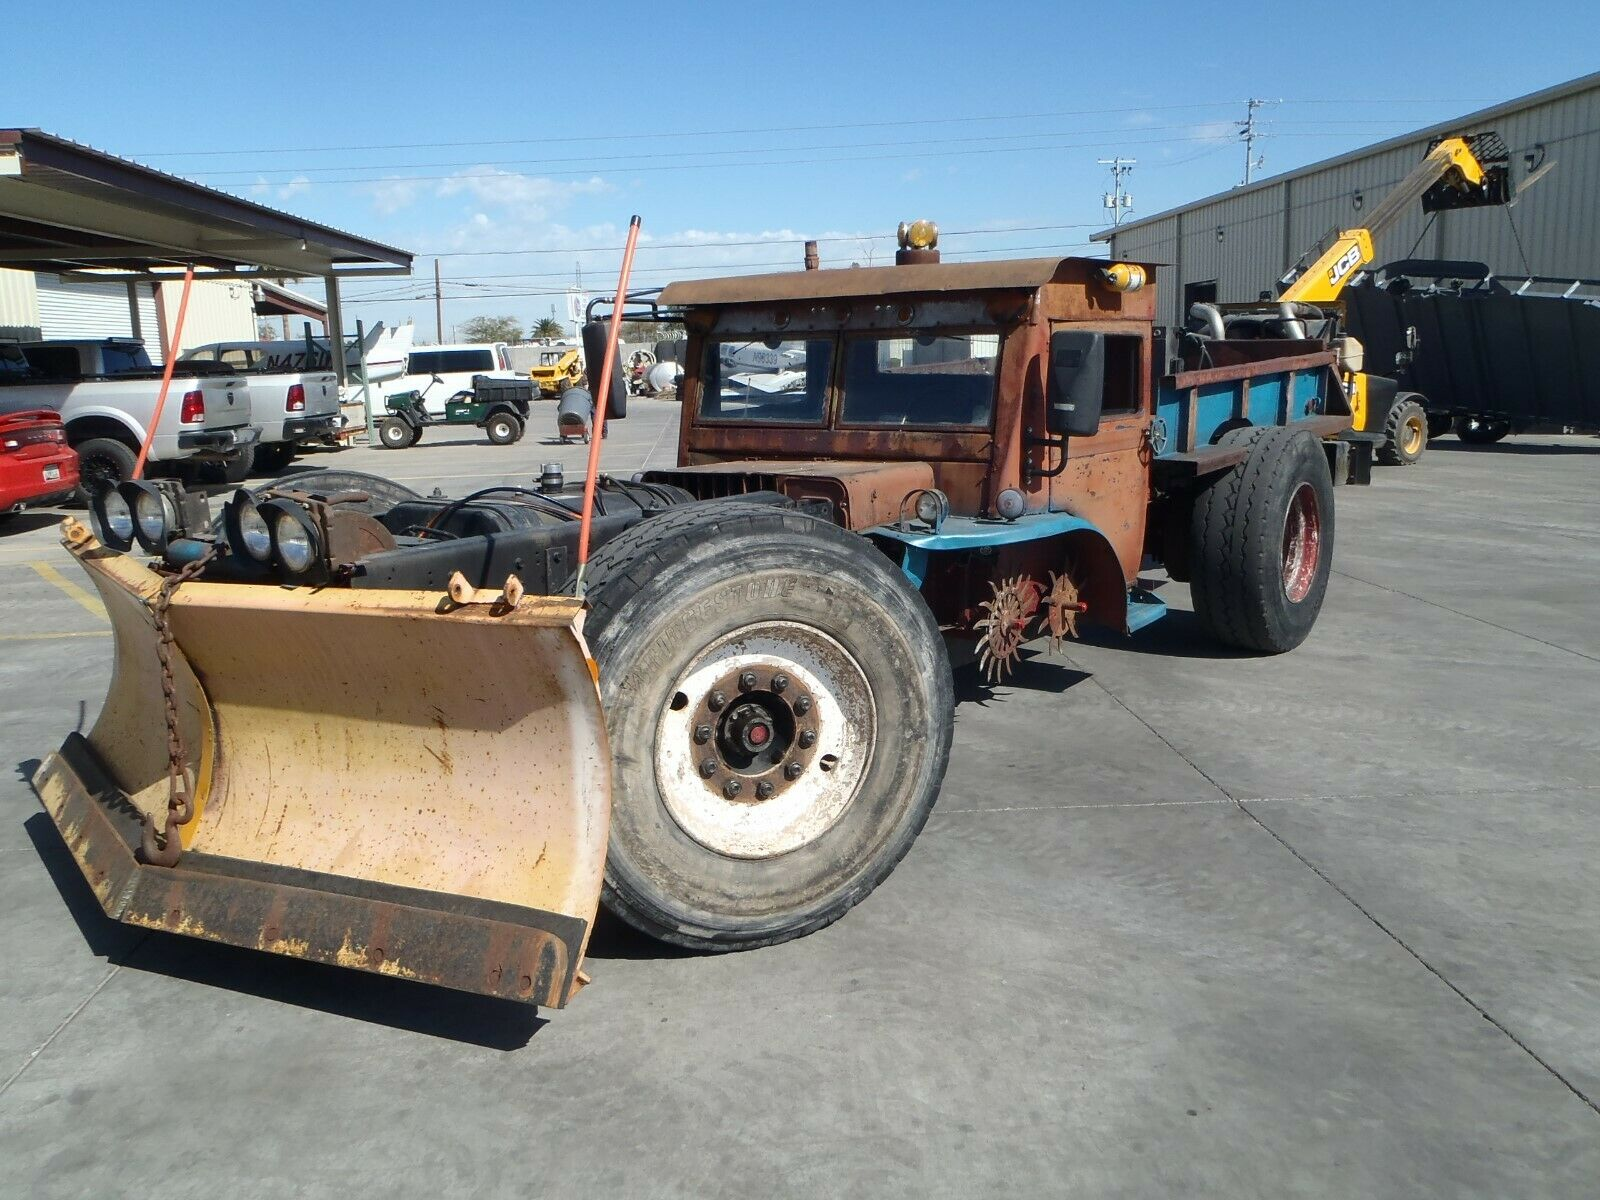 Absolute Freakshow: The Wildest Thing On eBay Right Now Is A Rear Engine, Pusher, Burma Jeep Rat Rod